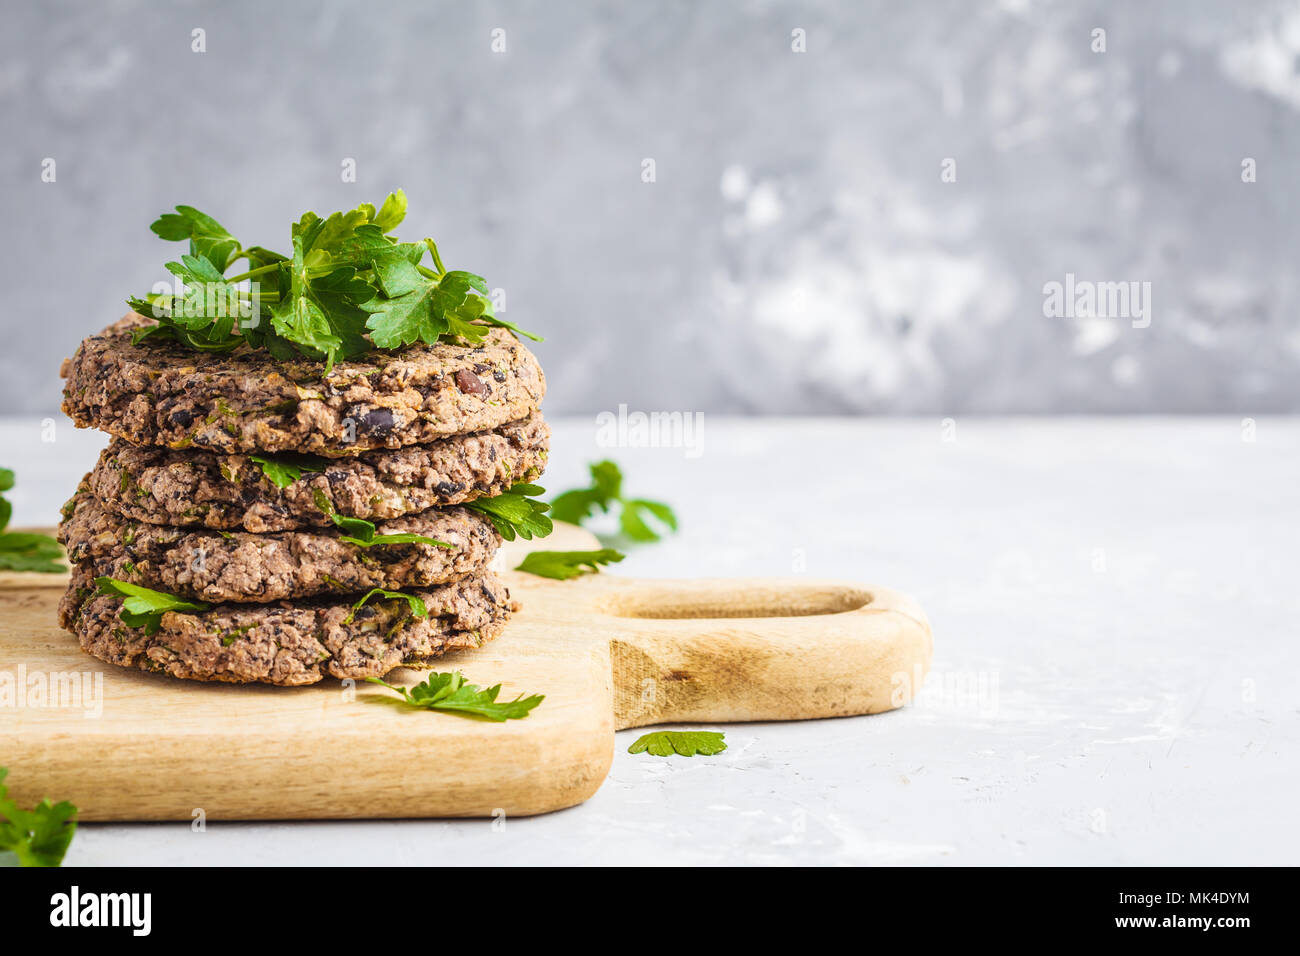 Vegan beans burgers (cutlets) with parsley on a wooden board.  Healthy vegan food concept. Stock Photo